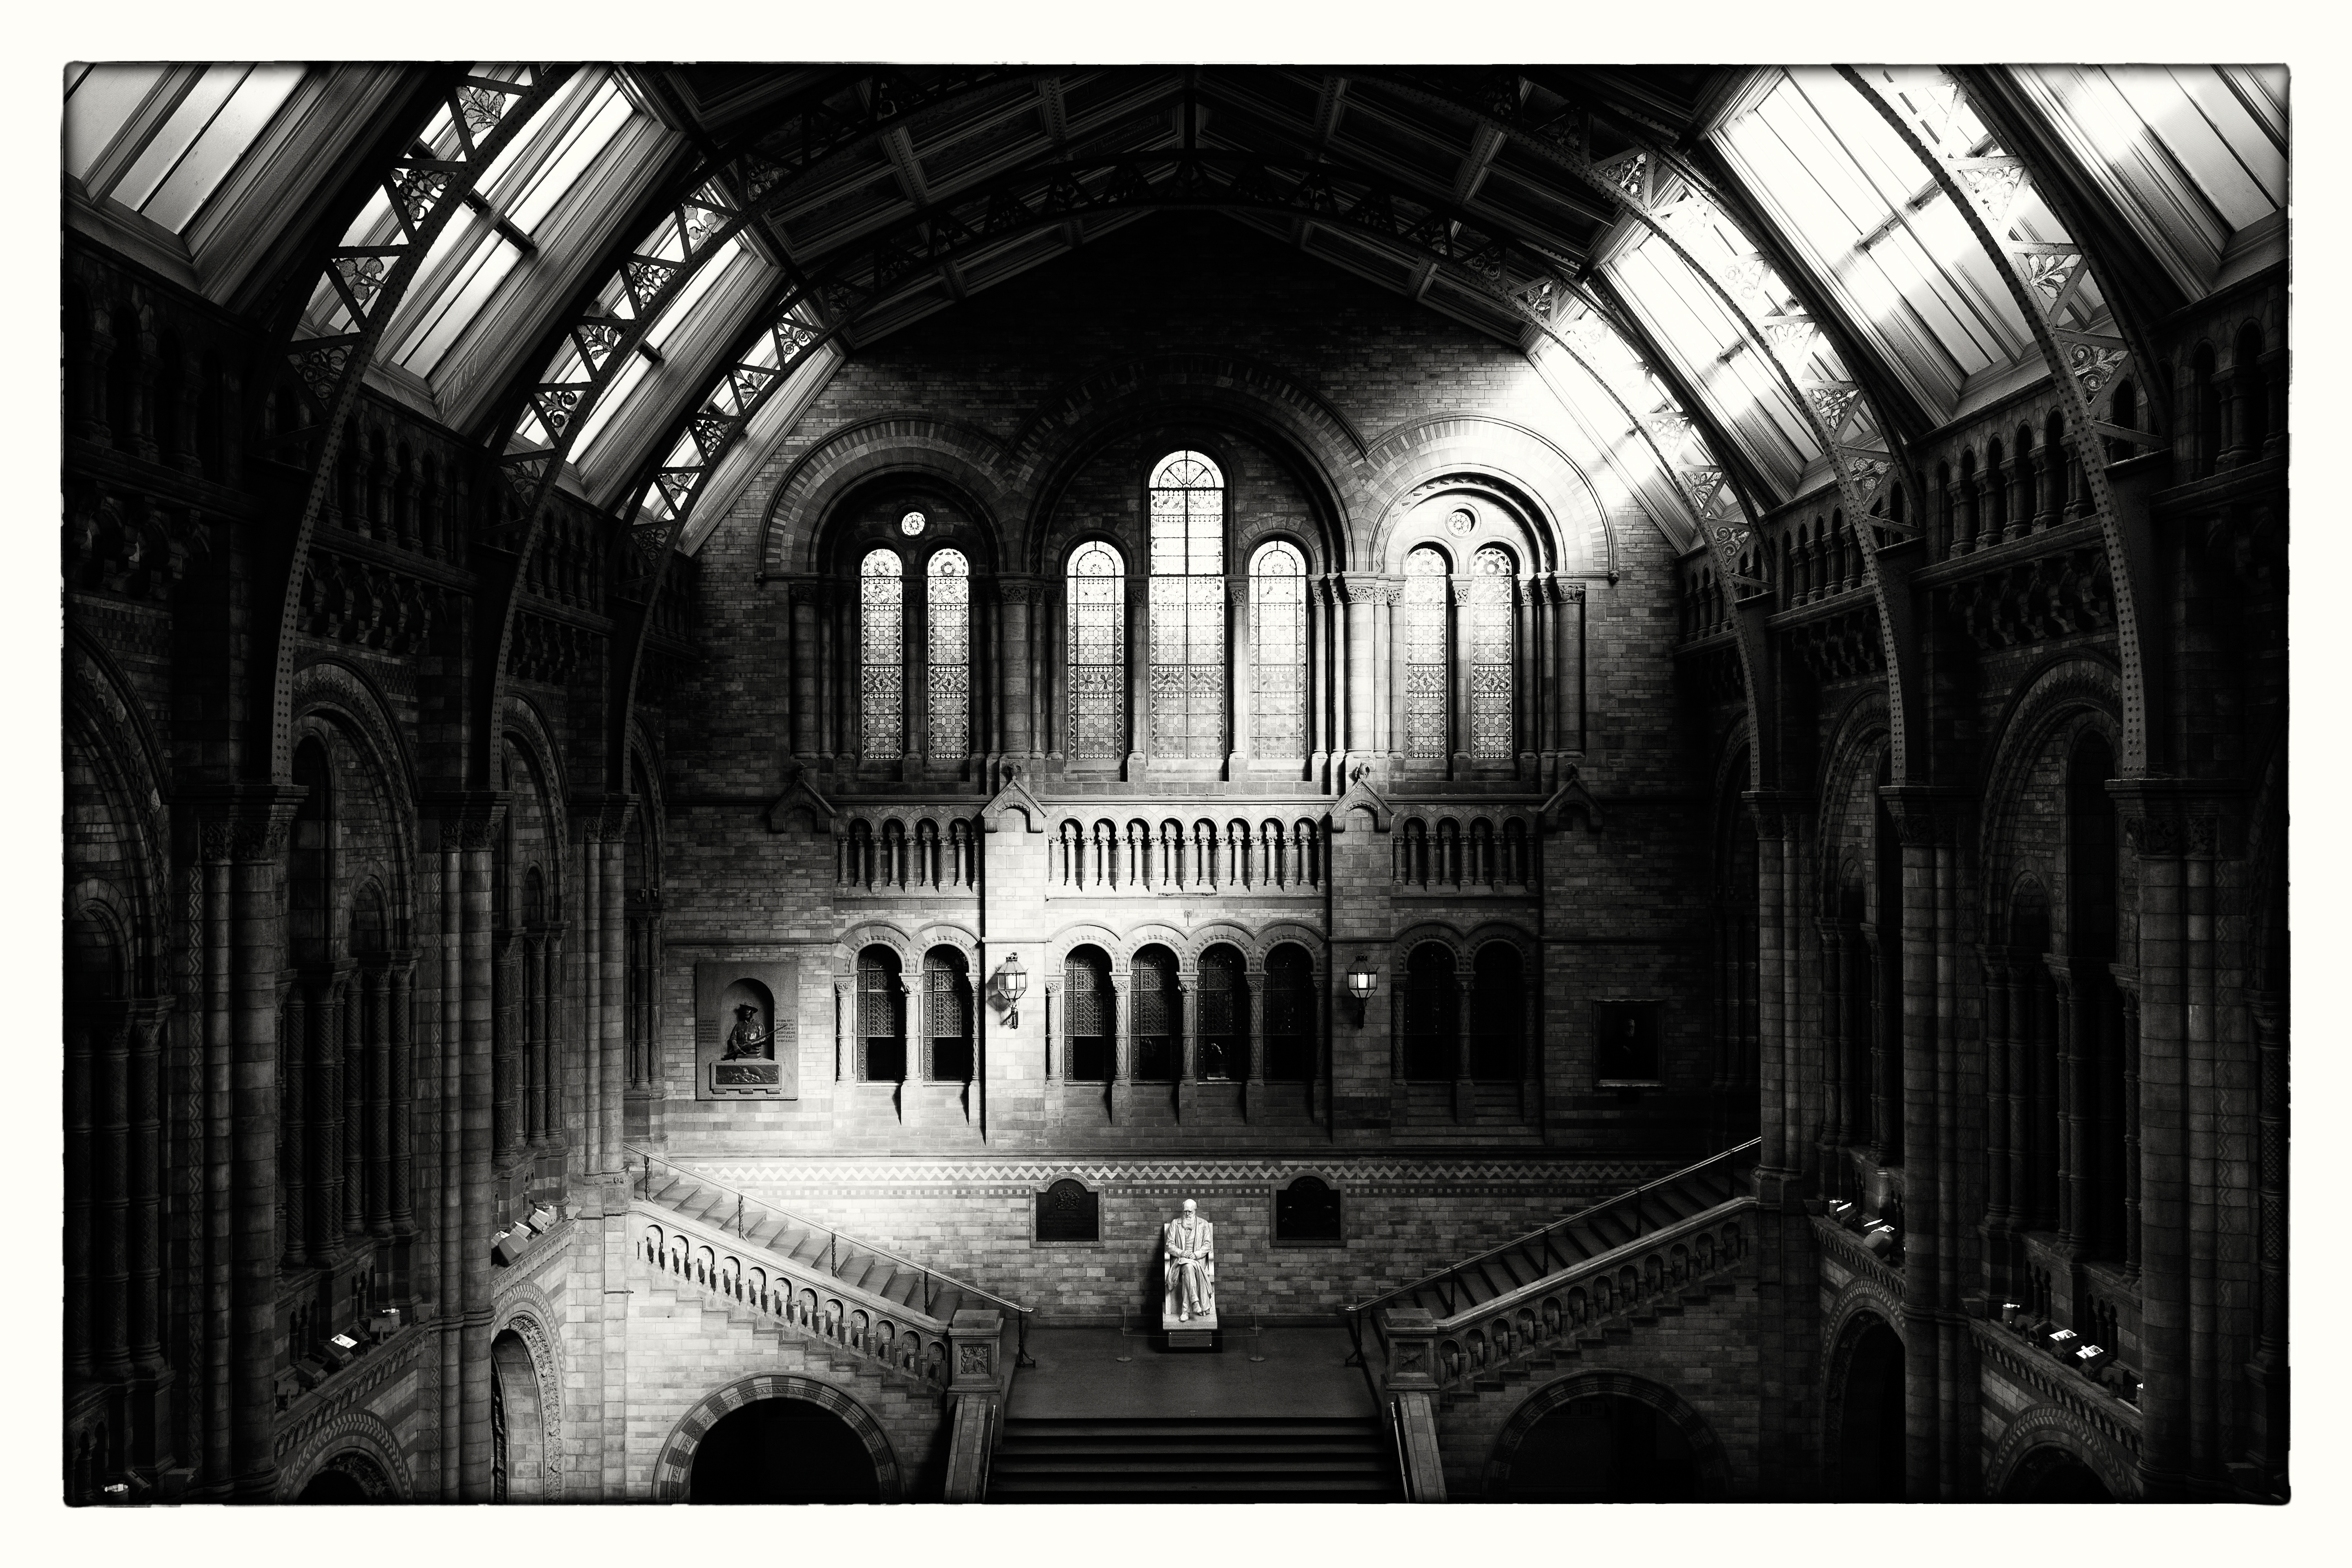 Natural History Museum, London. Sepia tone was used to warm up this architectural shot. Canon EOS 5D Mk III, 24-70mm, 1/80sec @ f/8, ISO 100